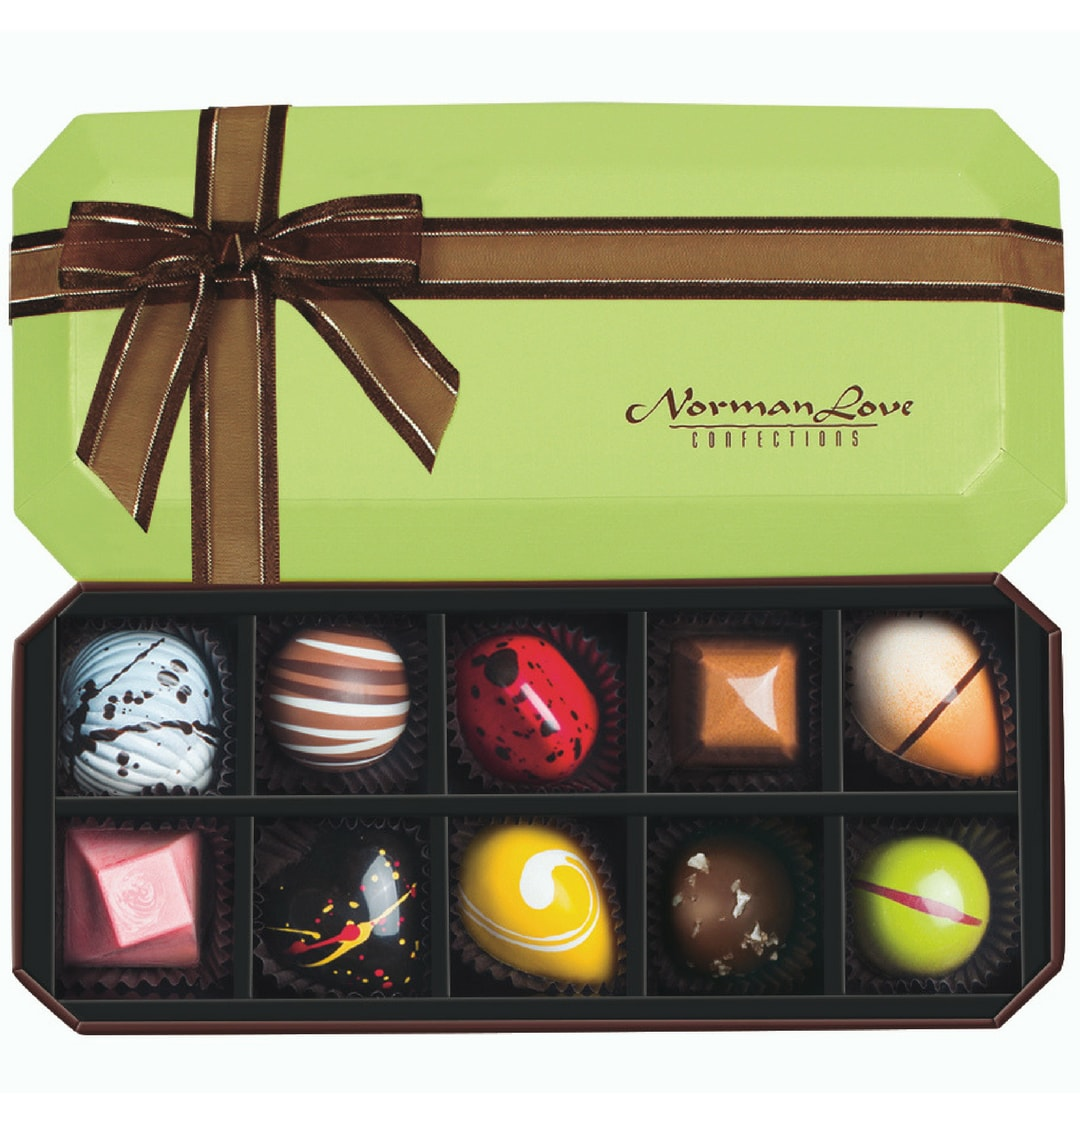 Norman Love Gourmet chocolate